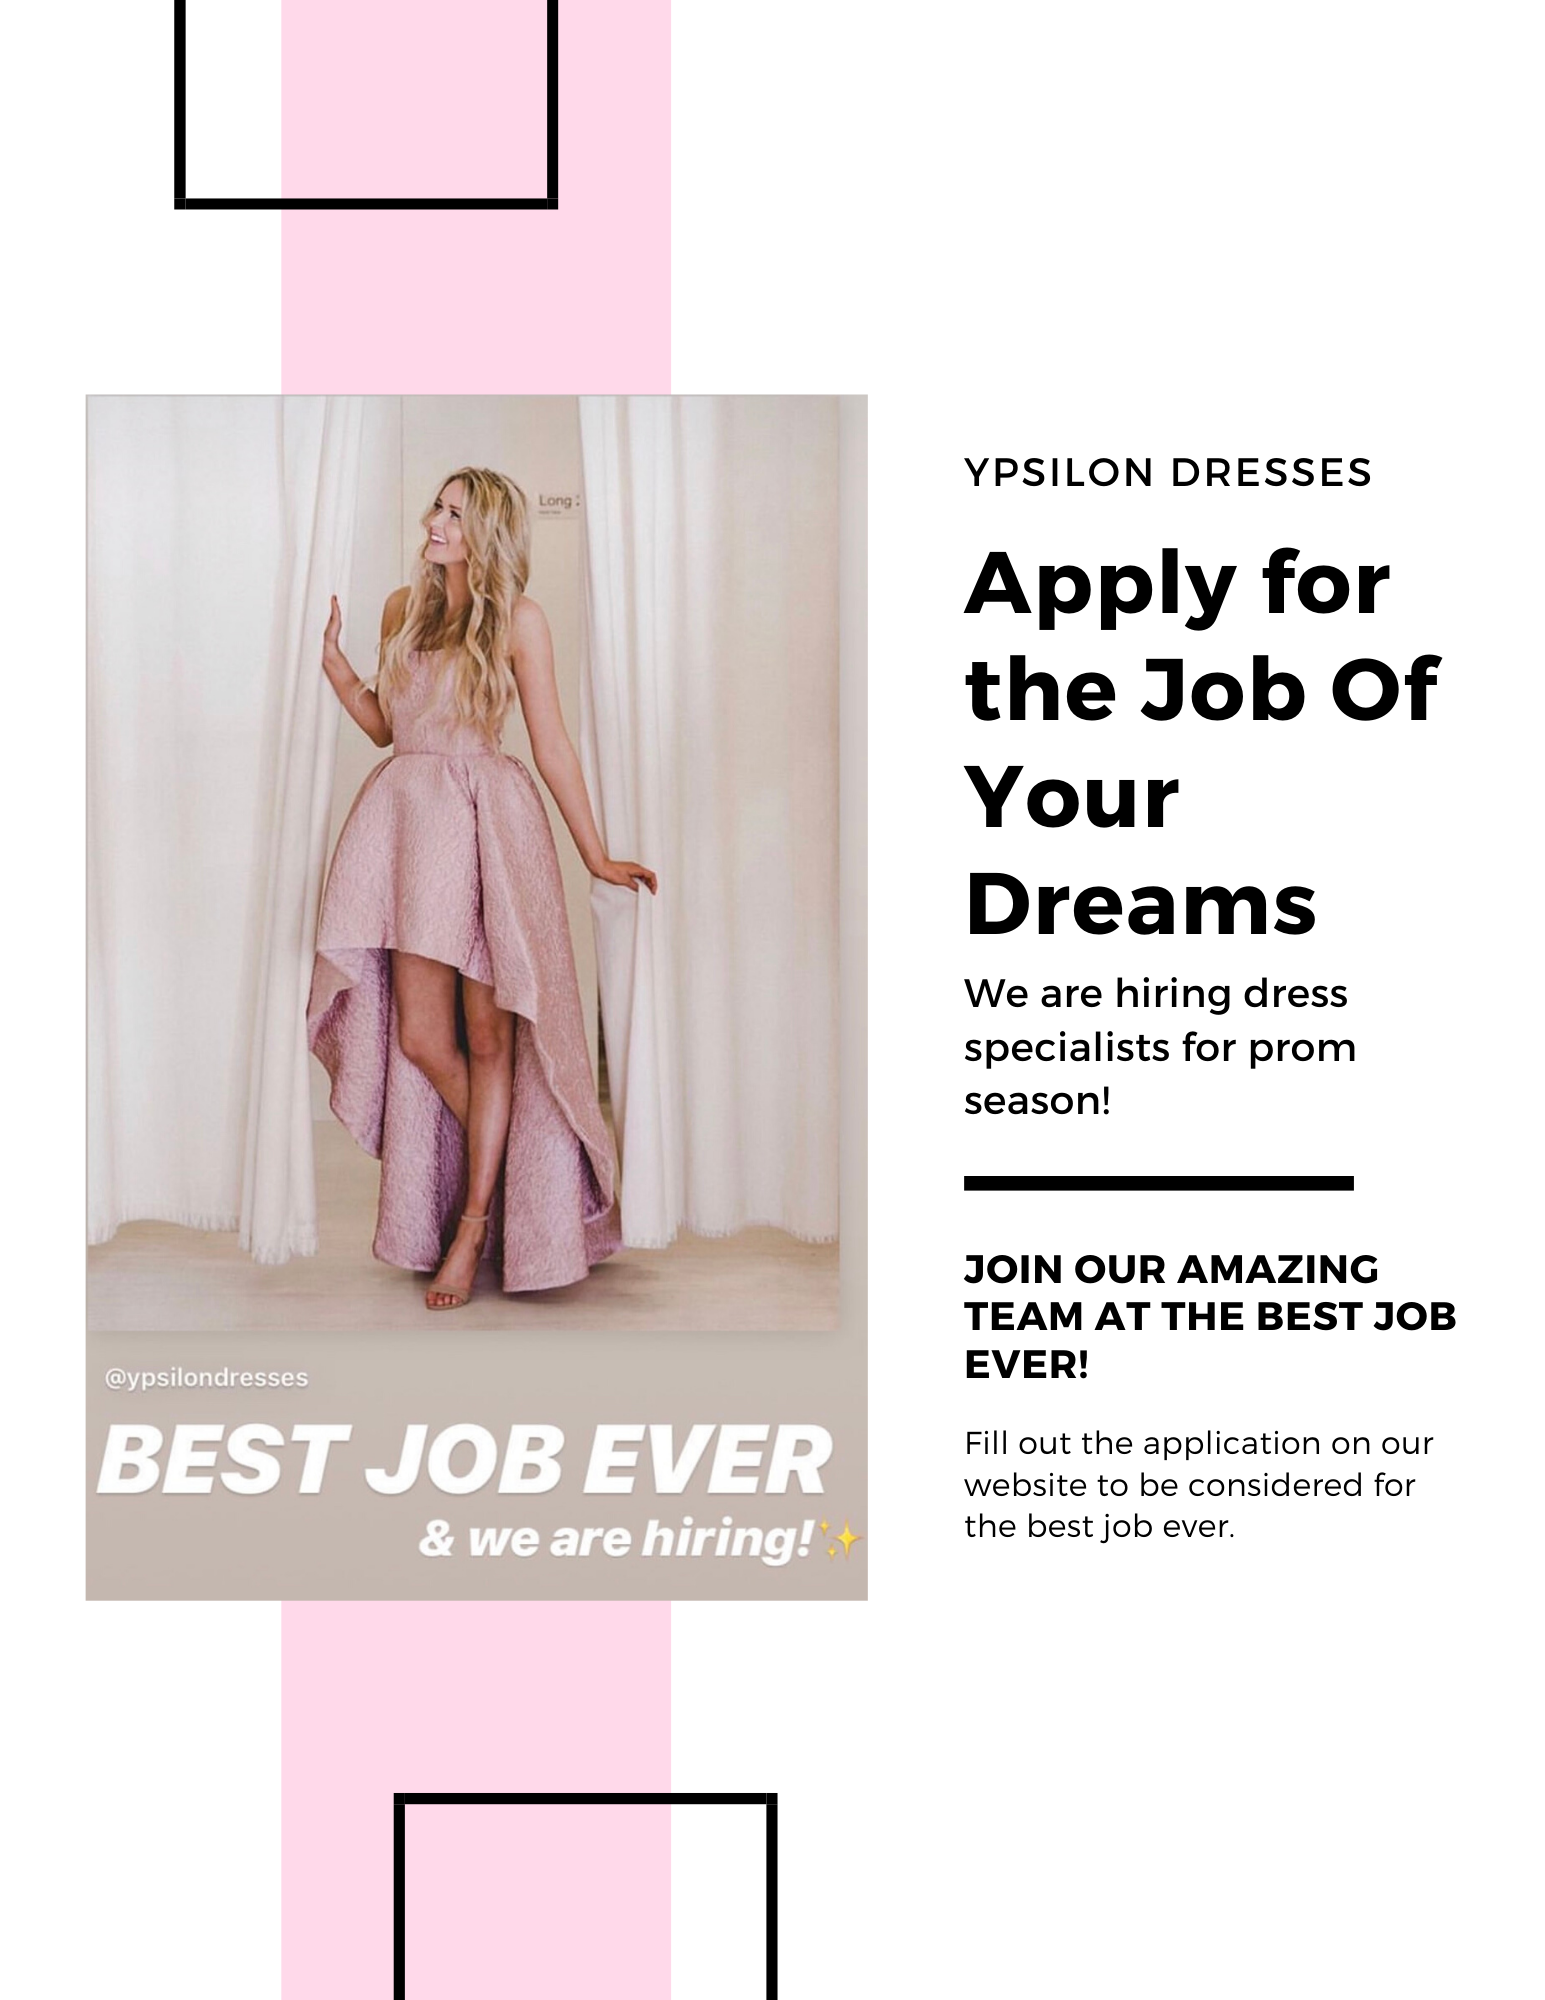 apply for the job of your dreams